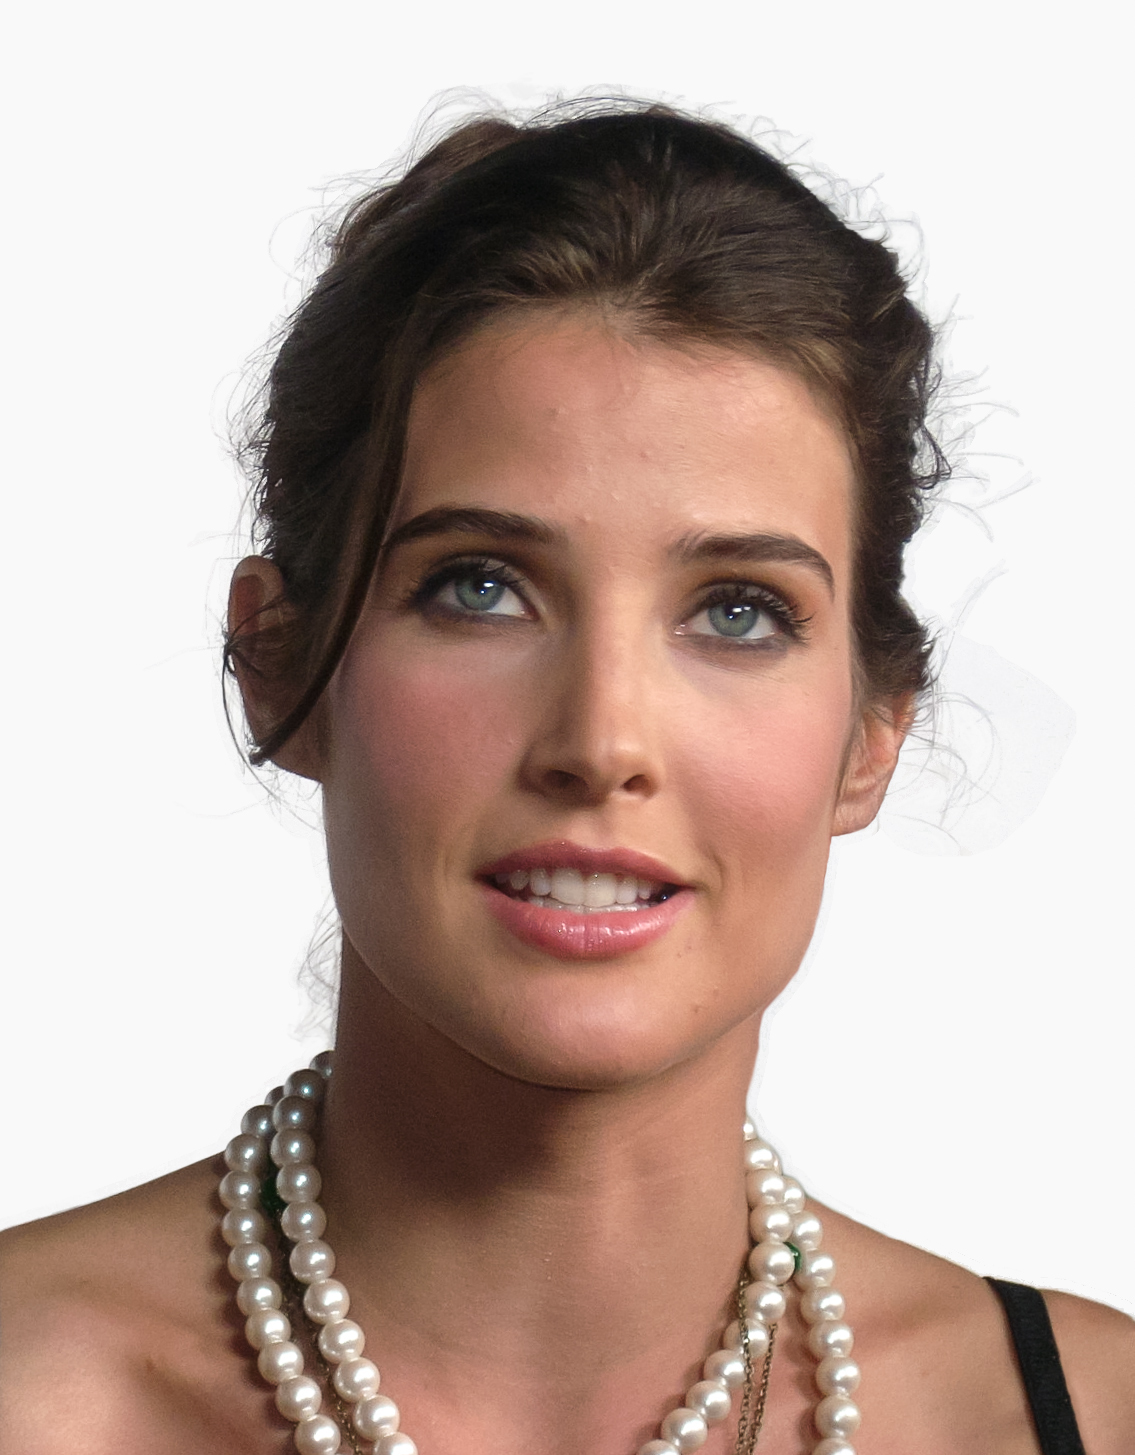 HQ Cobie Smulders Wallpapers | File 584.7Kb